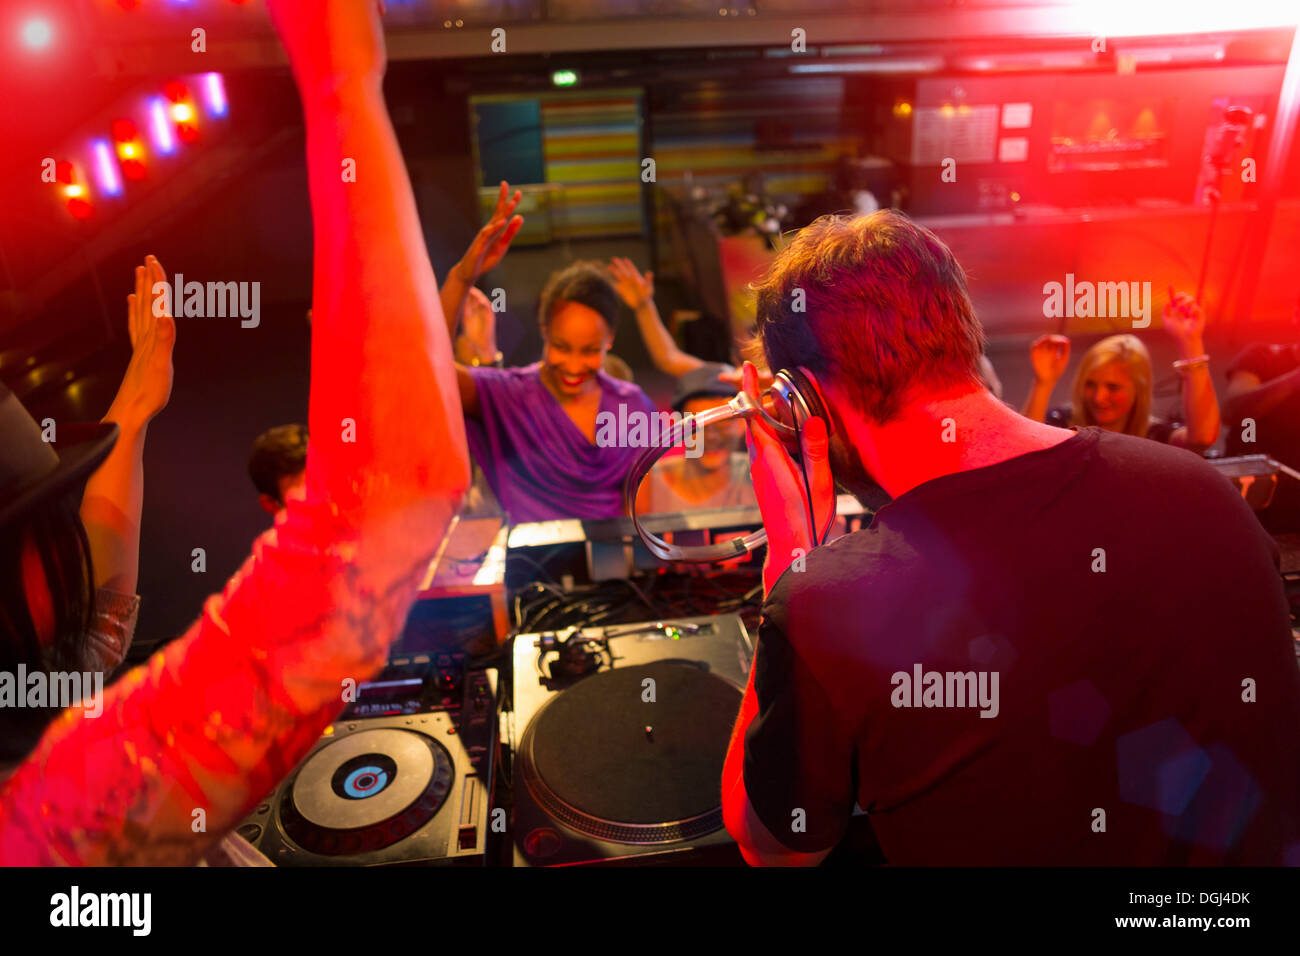 Rear view of disc jockey surrounded by people dancing - Stock Image